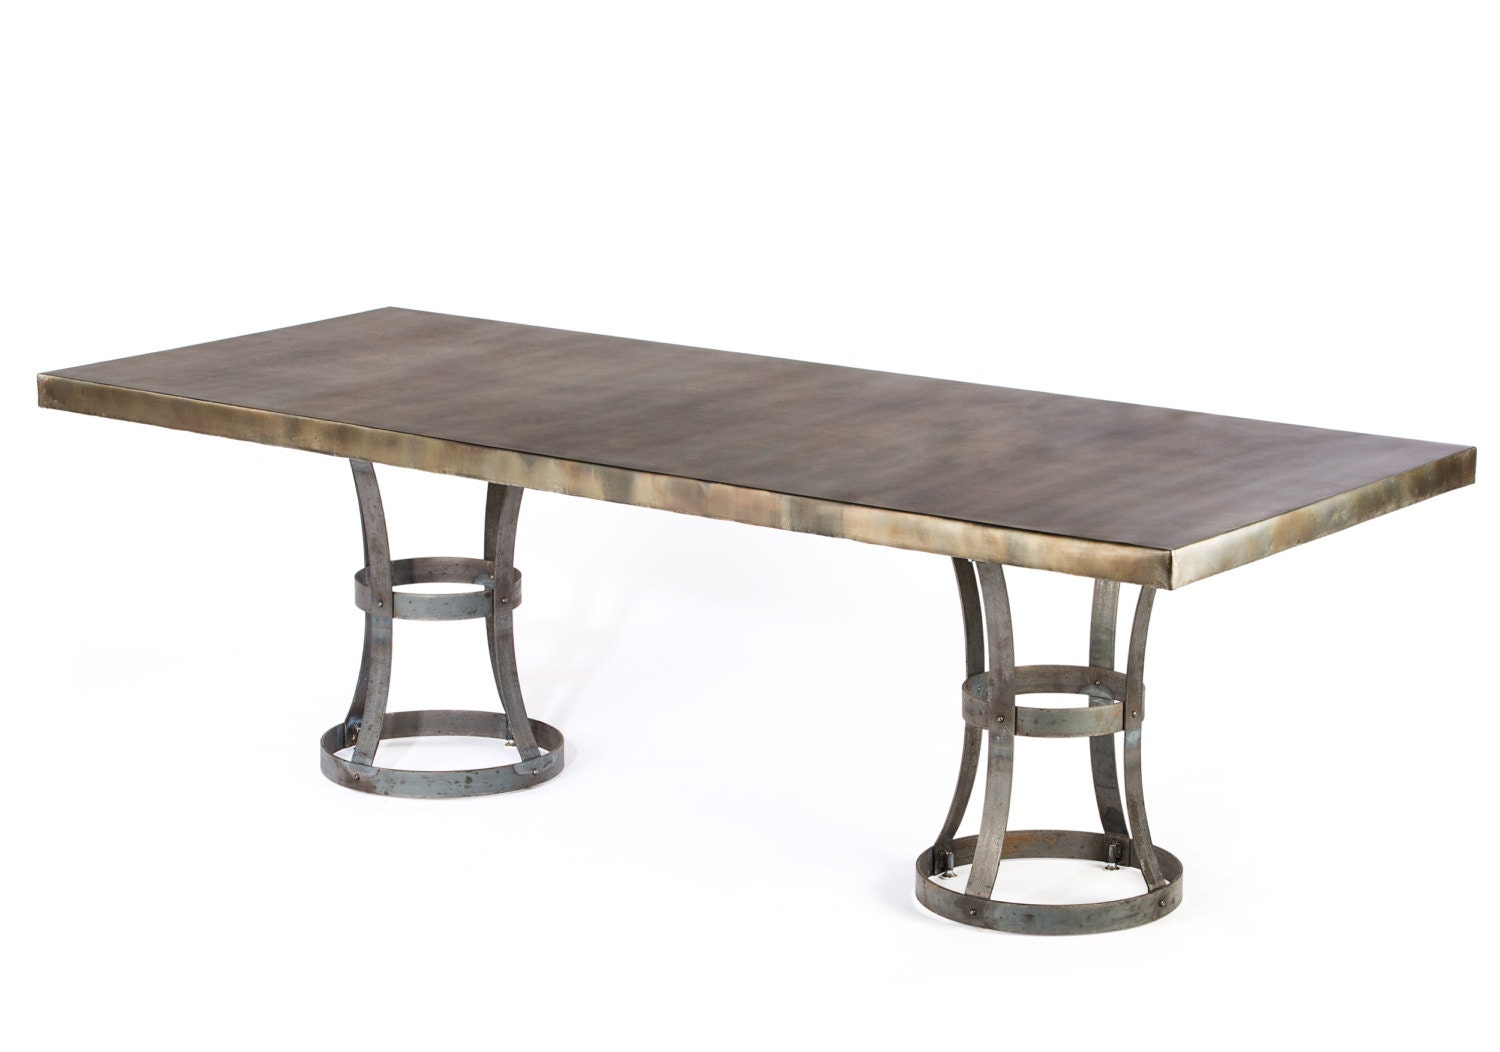 Zinc table zinc dining table madera zinc dining table for Table exterieur zinc